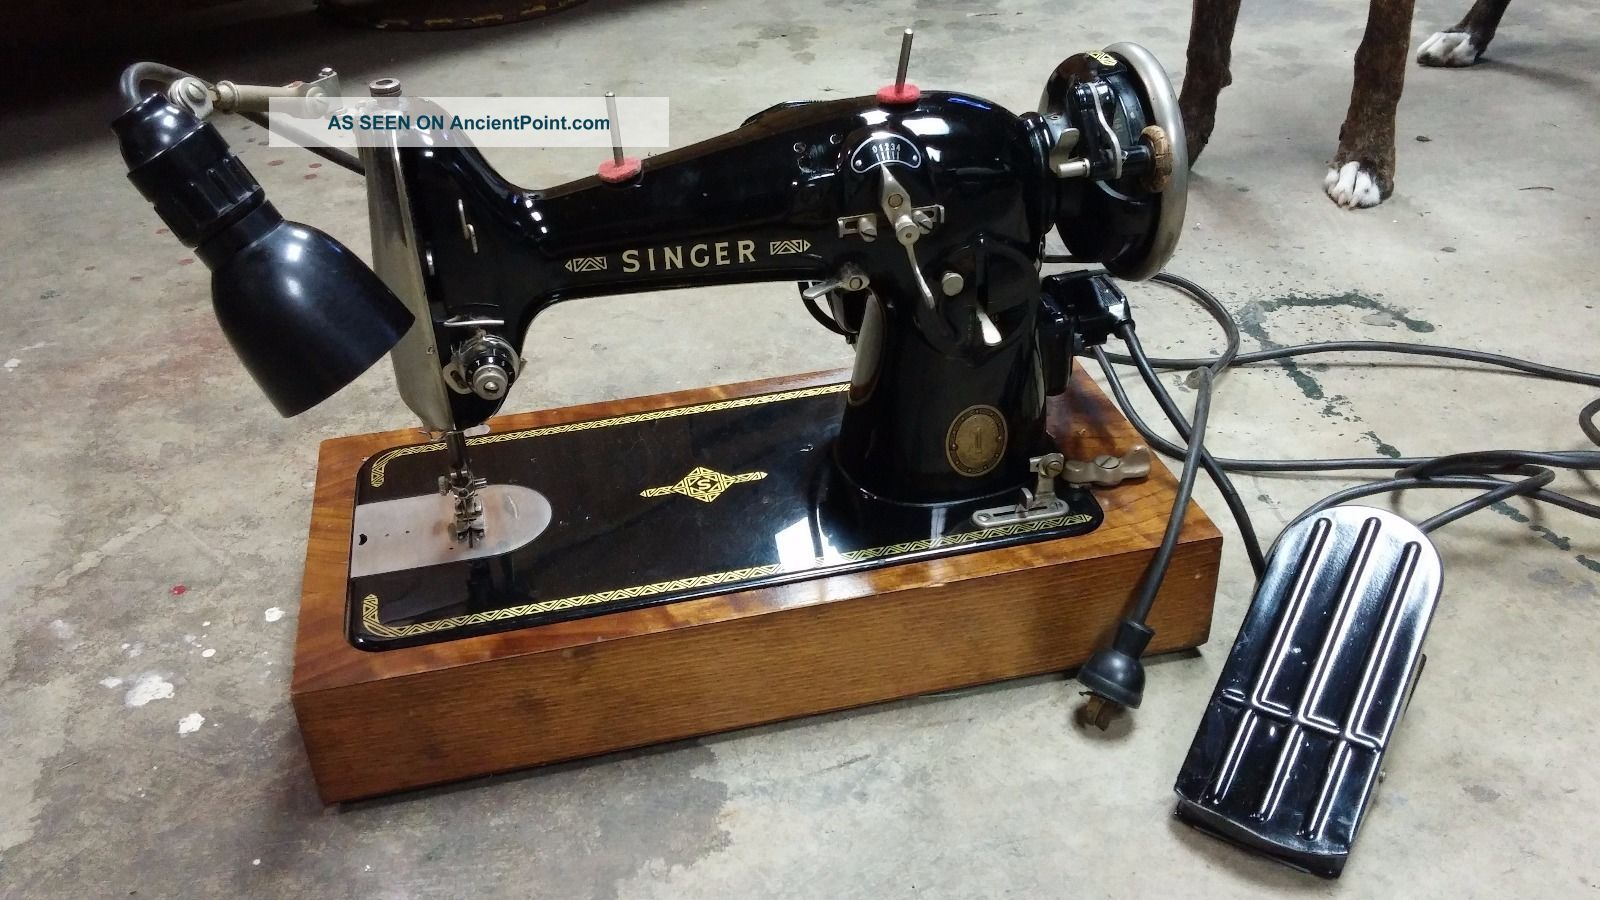 Singer Sewing Machine - - 1920 - - Perfectly Sewing Machines photo